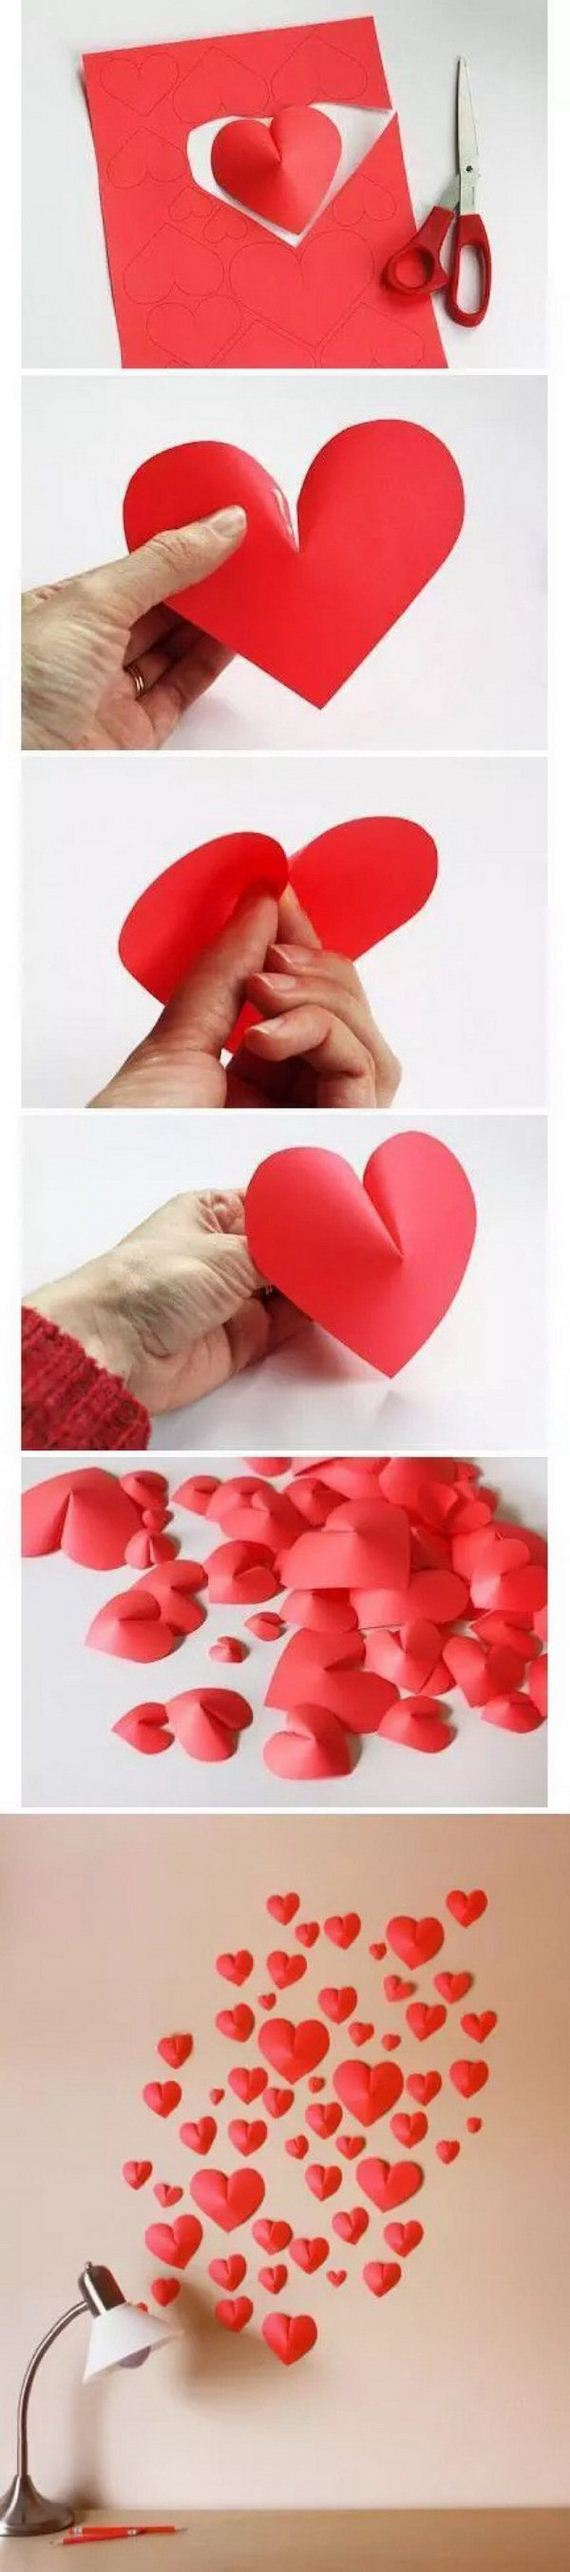 34-valentines-day-ideas